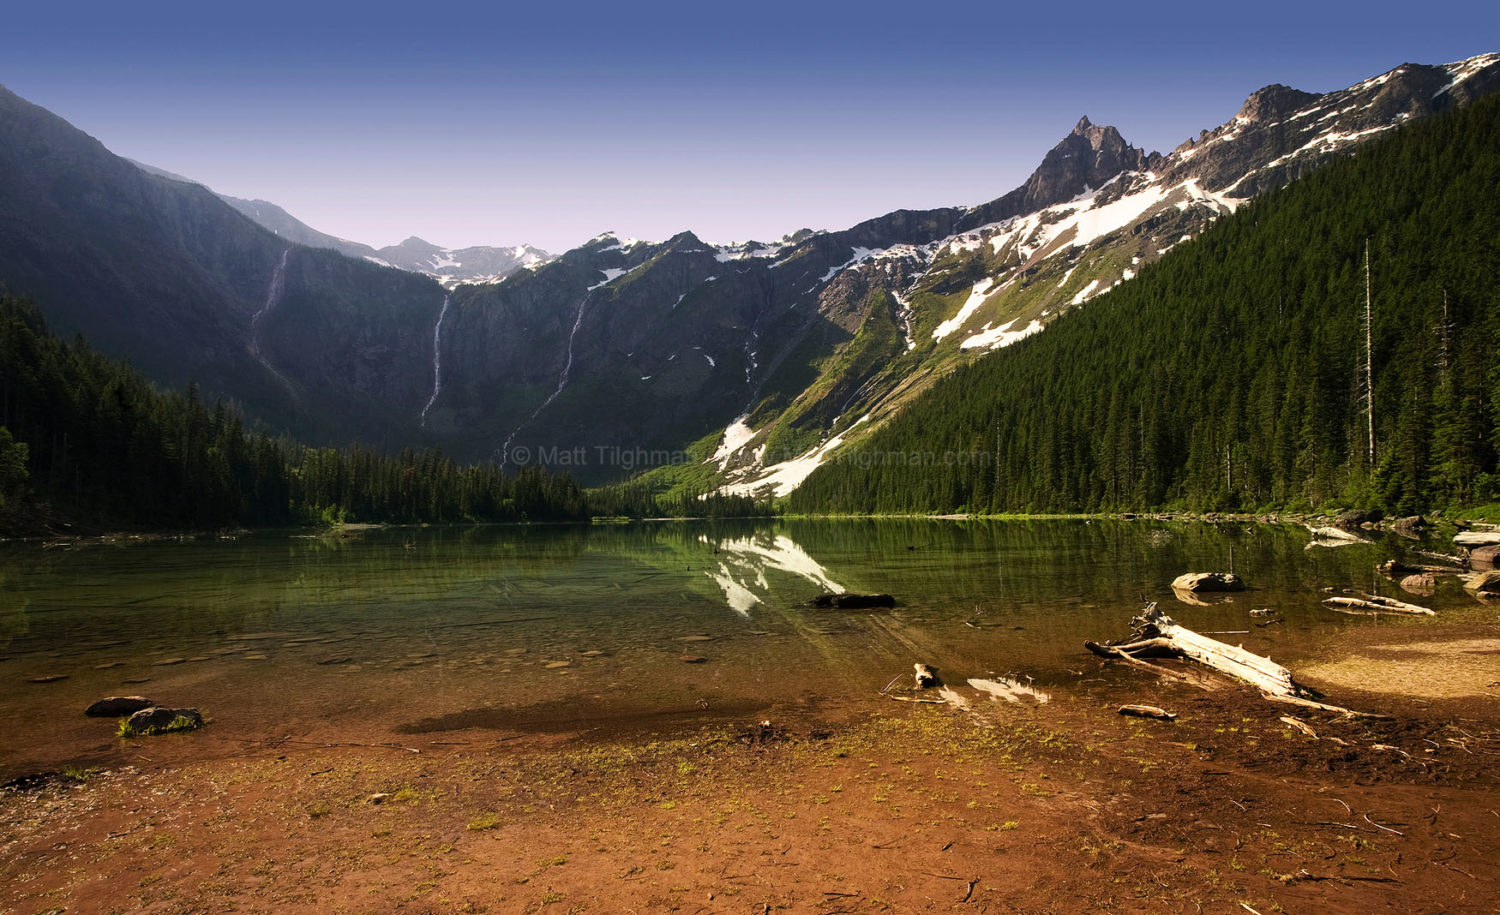 Fine art stock photograph of Avalanche Lake at dawn, flanked by towering mountains and boundless cascades fueled by snow melt. Glacier National Park, Montana.